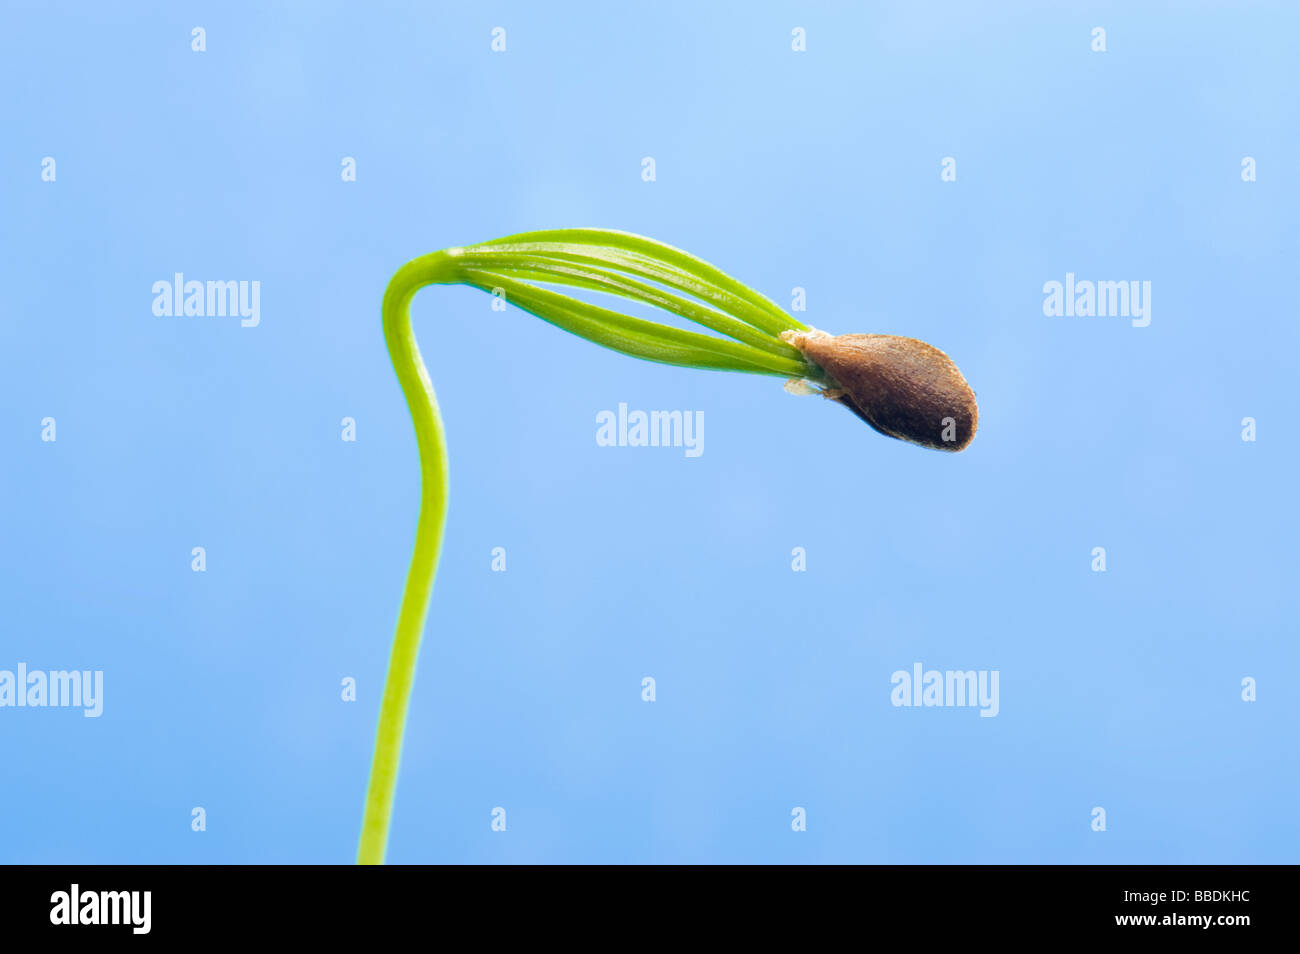 conifer seed tree unfold unfolding  cotyledon seed leaf germ germinate germination  sperm propagation green new - Stock Image